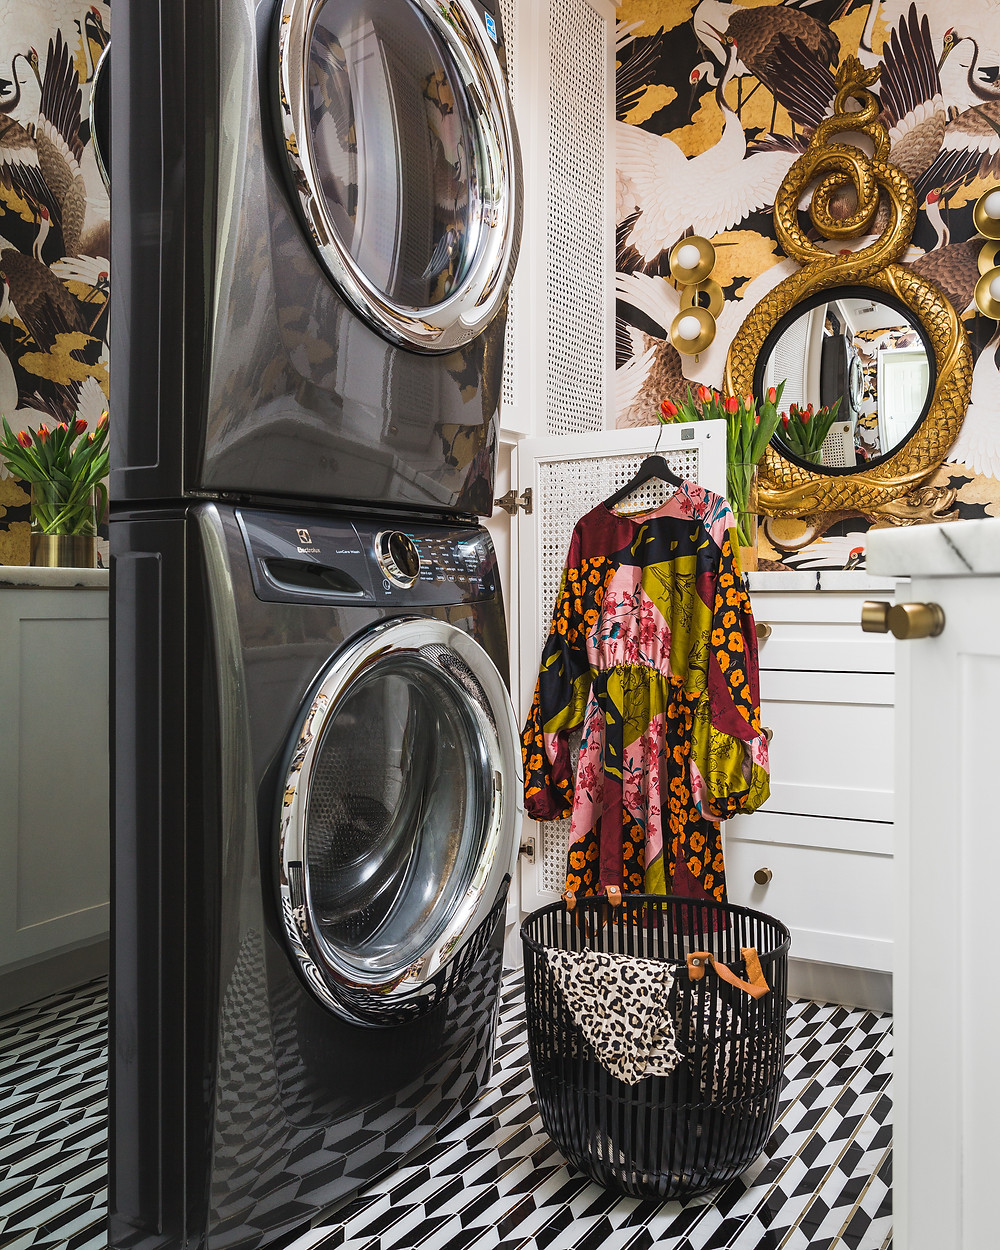 laundry Room With Black And White Marble Tile And LG Styler